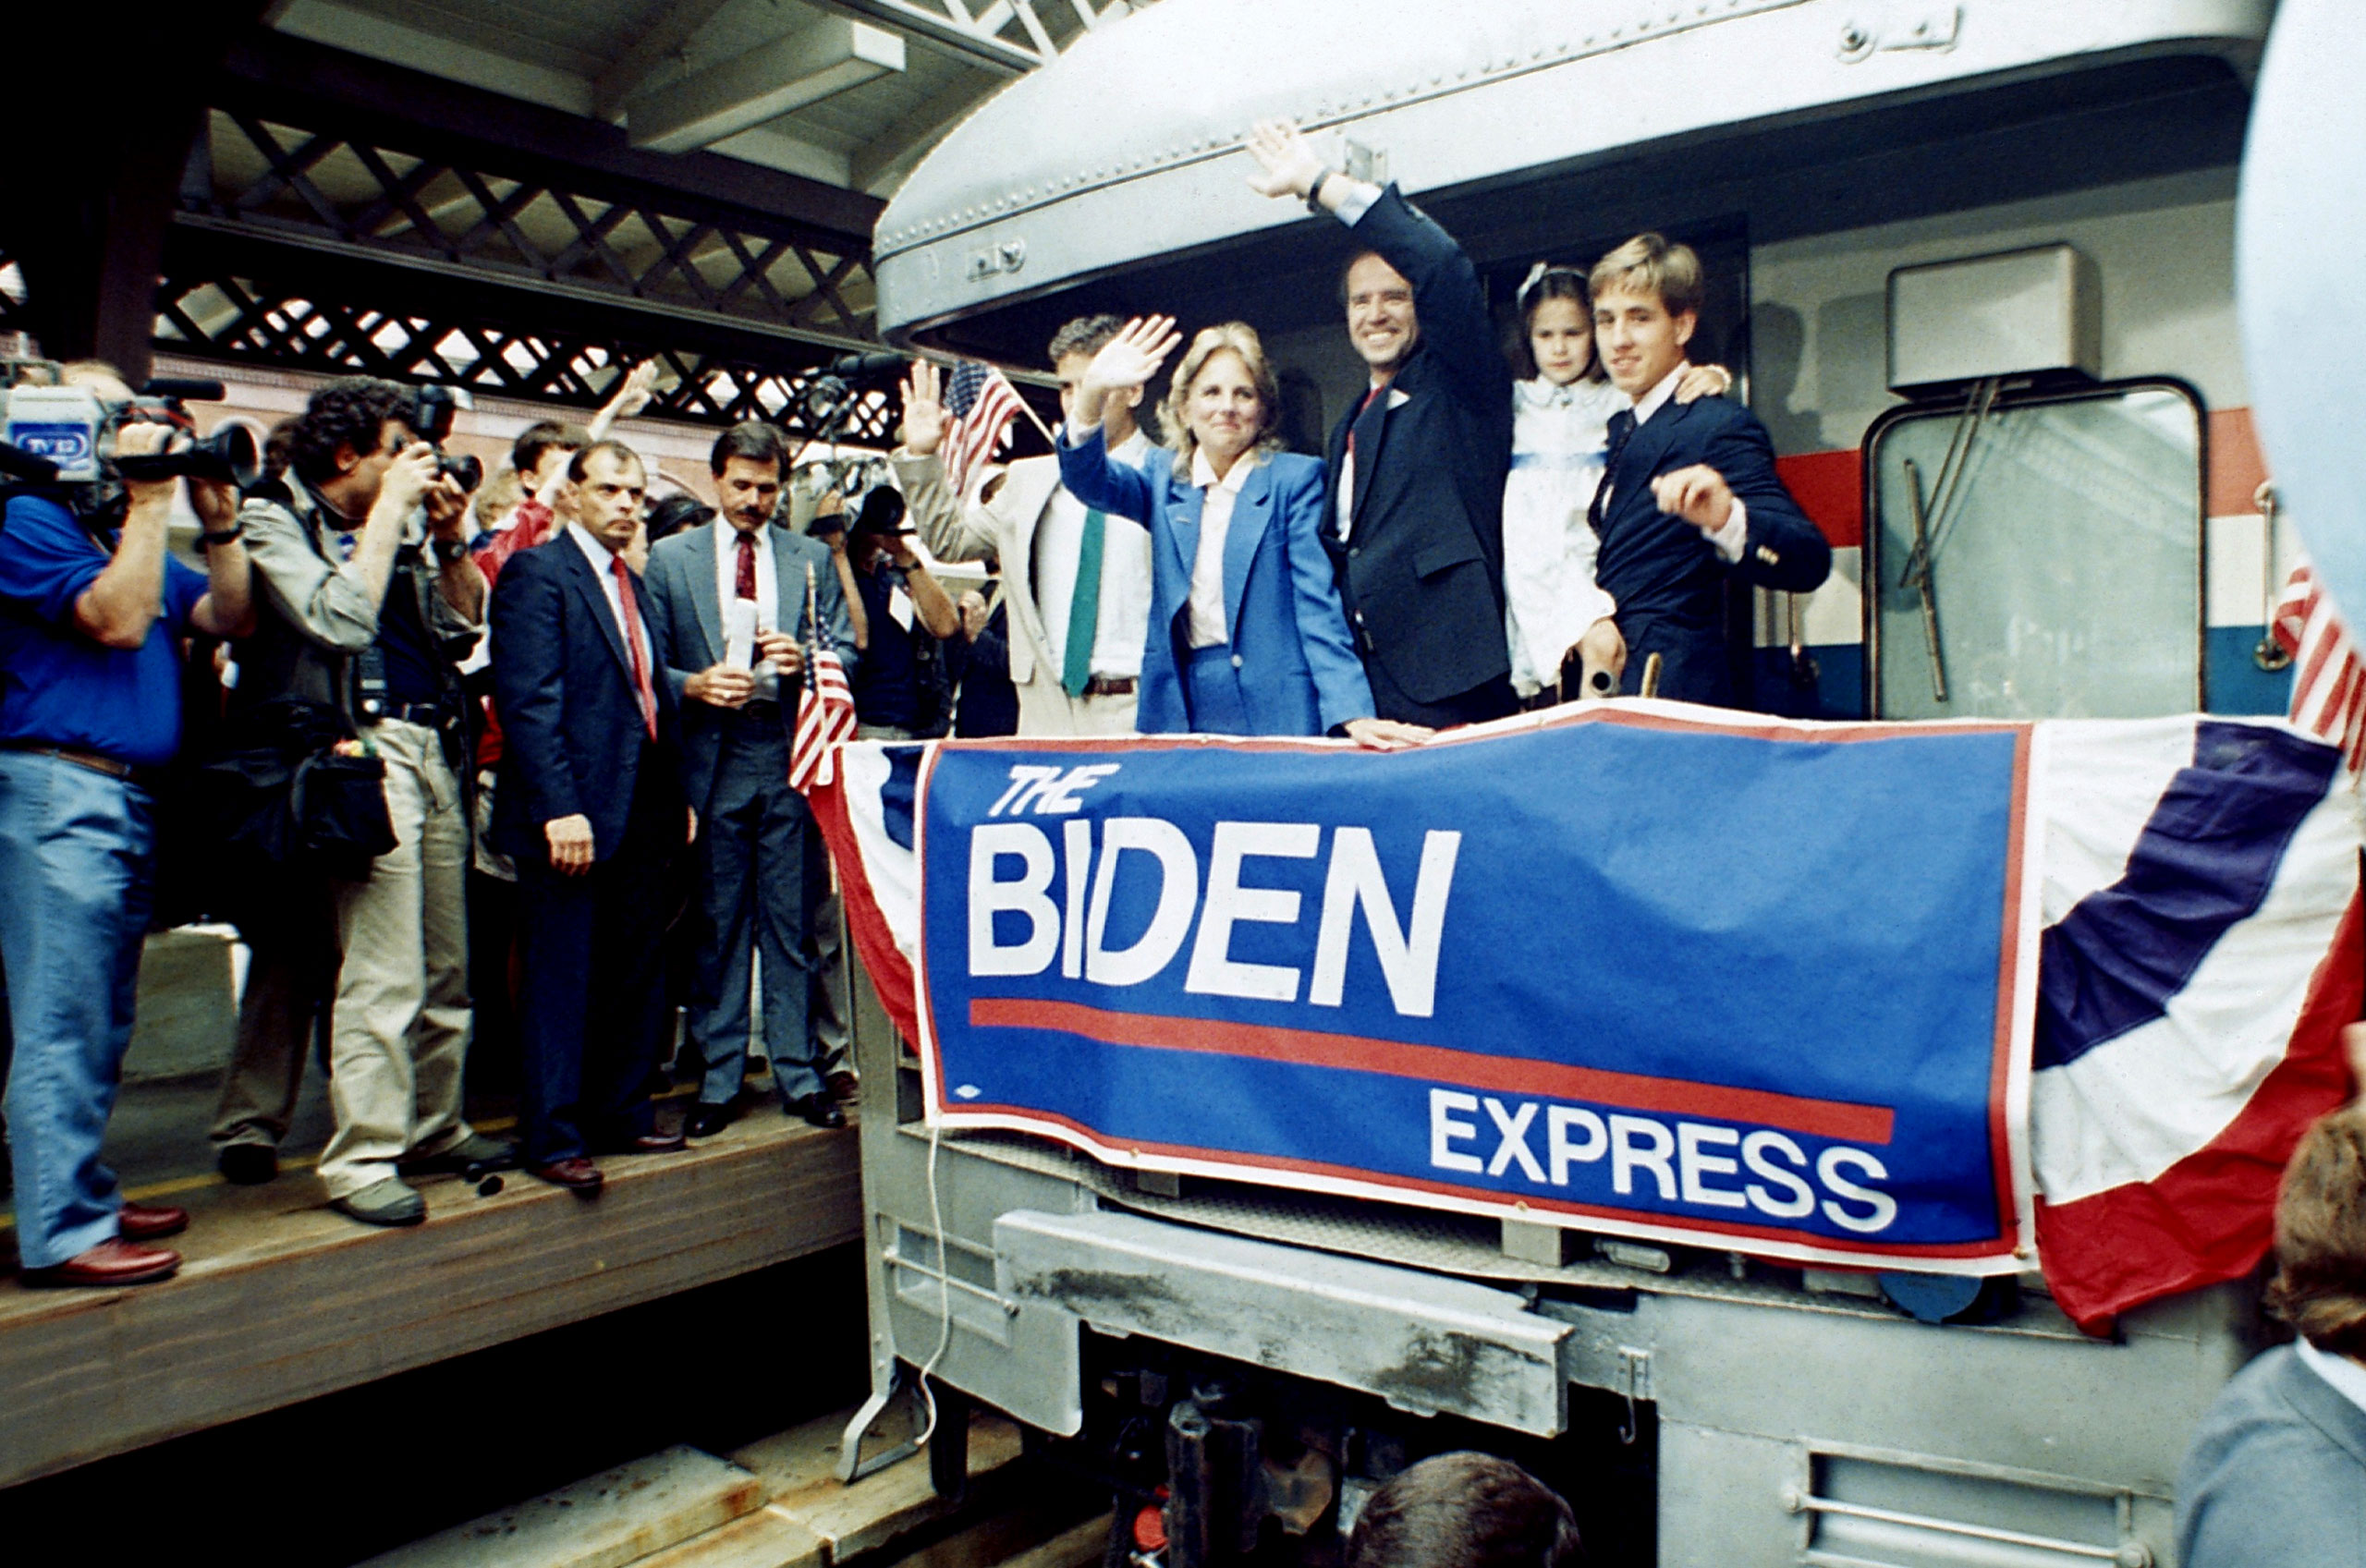 Joe Biden and his family, including his second wife Jill (far left), after announcing his candidacy for president in Wilmington, Del., on June 9, 1987.